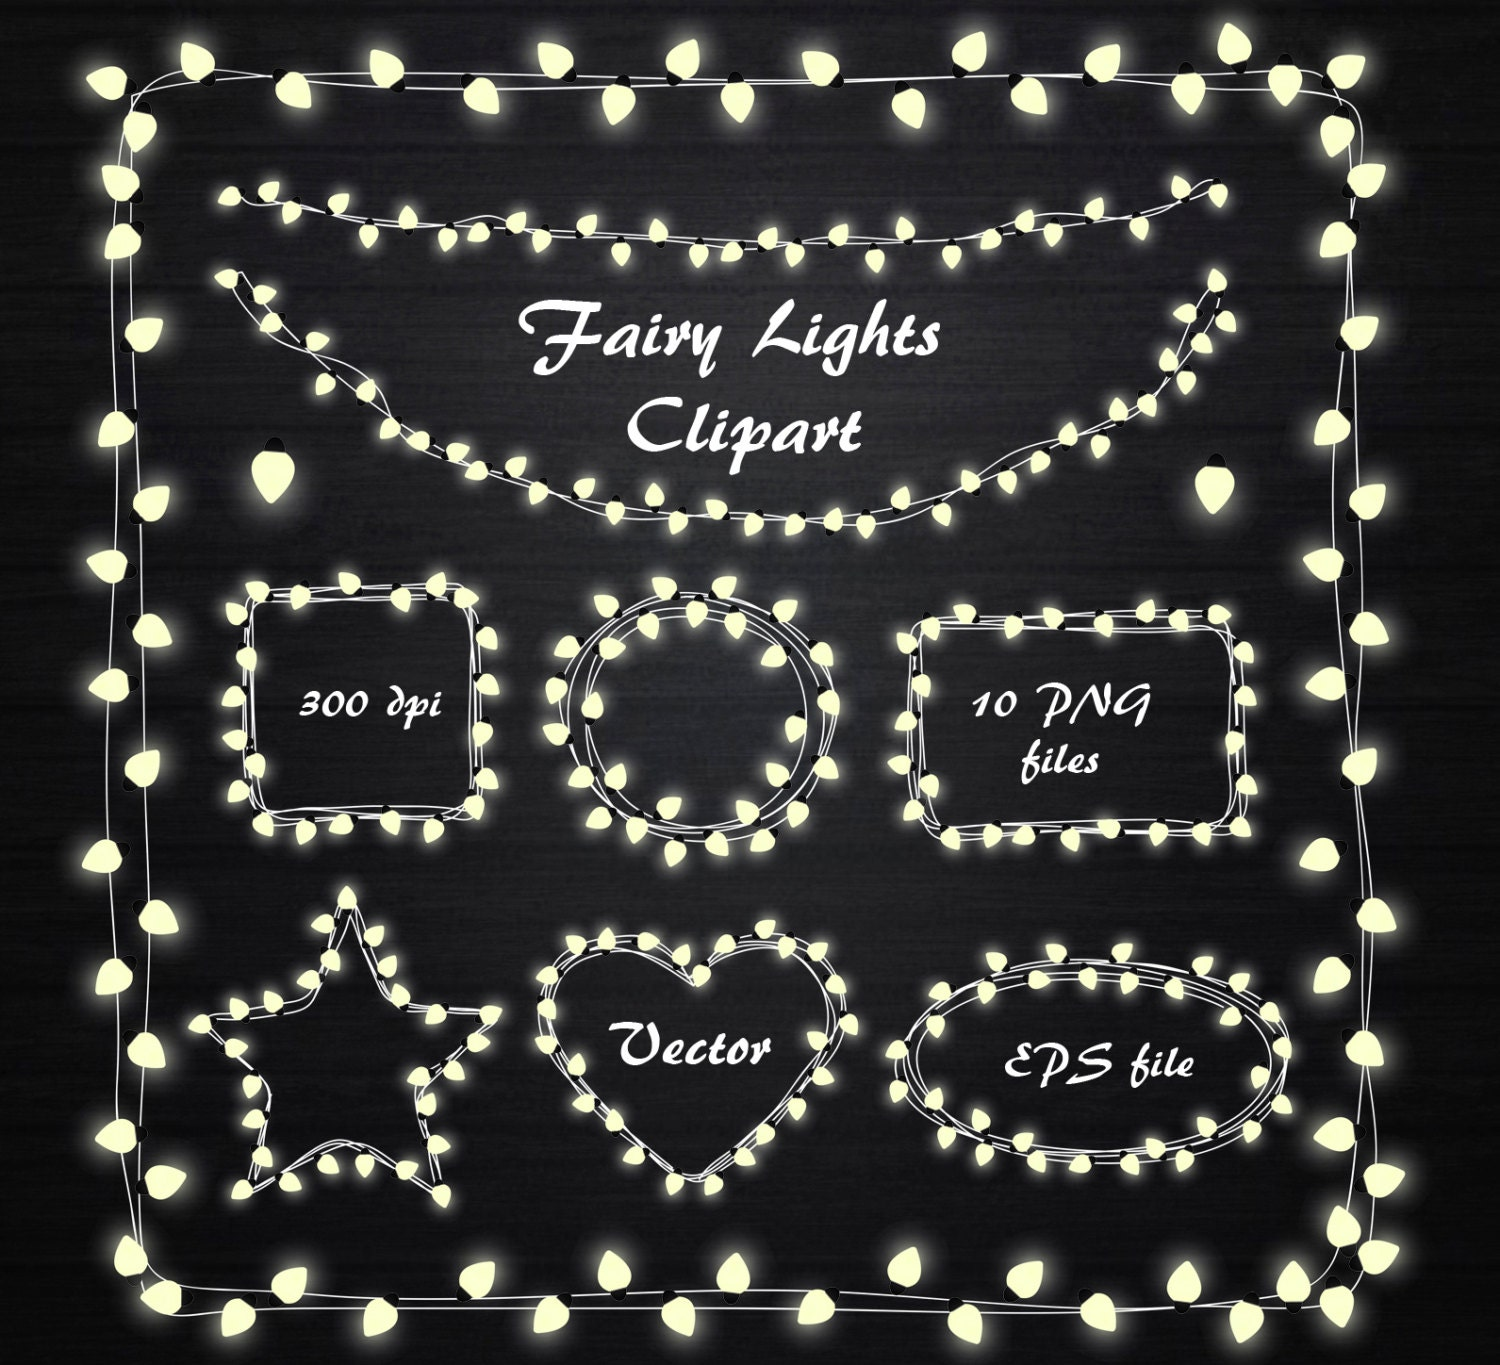 Fairy Lights Clipart String Lights Clipart Fairy Lights